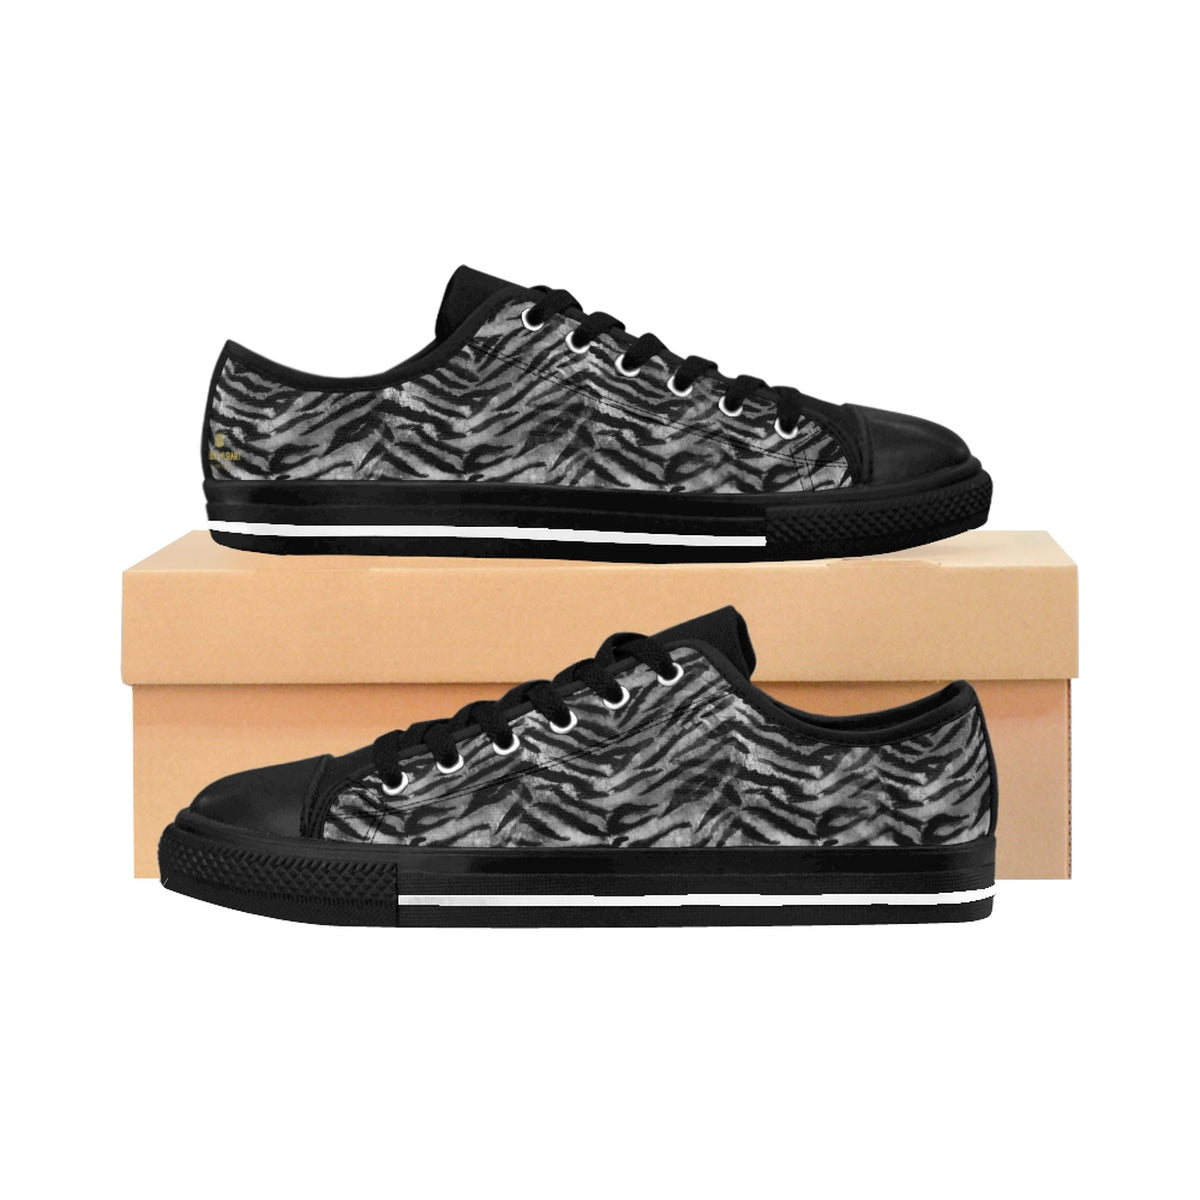 Gray Tiger Stripe Animal Skin Pattern Print Men's Low Top Sneakers Running Shoes-Men's Low Top Sneakers-US 9-Heidi Kimura Art LLC